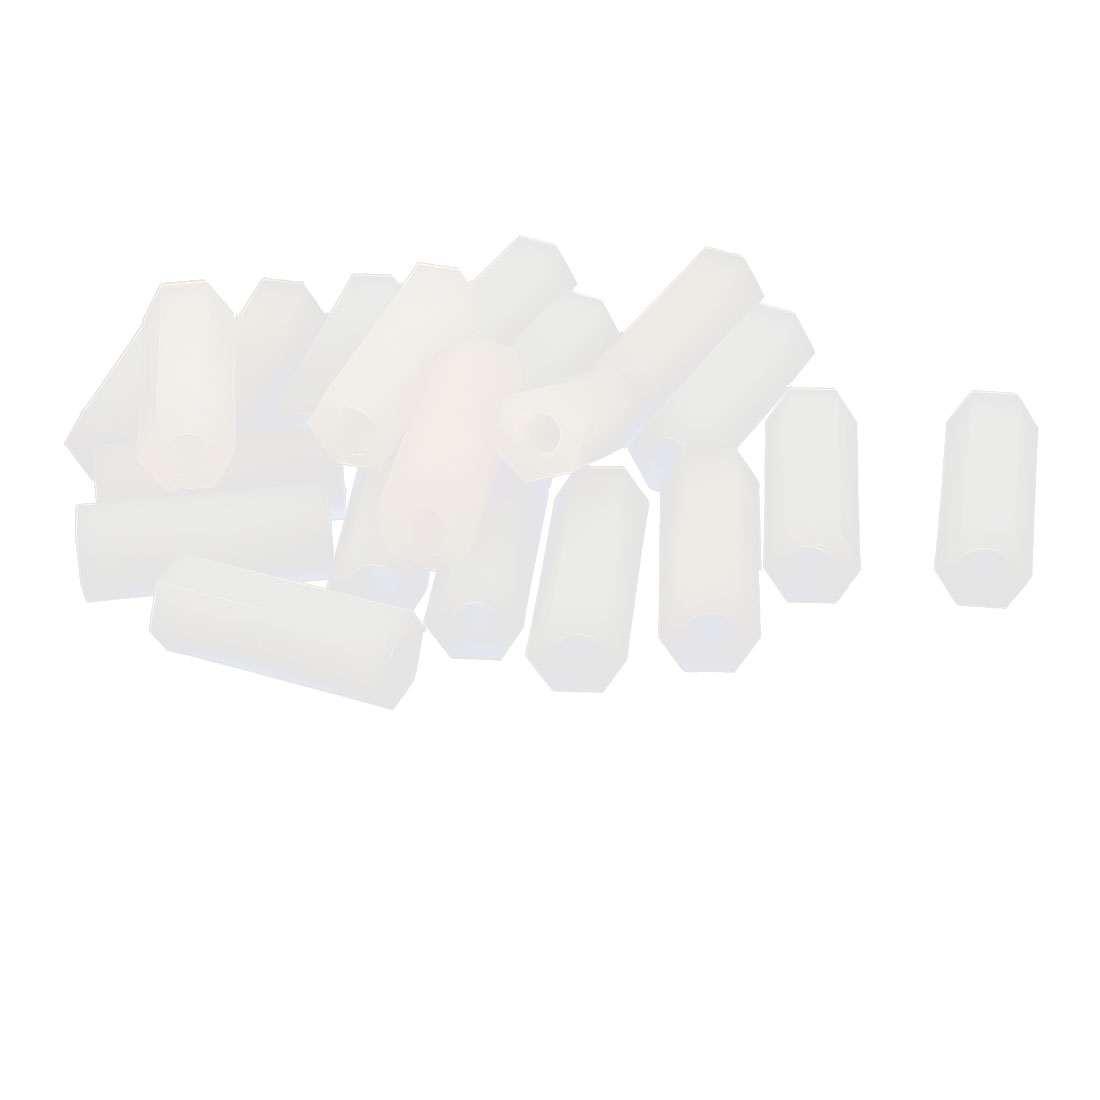 20 x 4mm M4 Female Thread White Nylon PCB Spacer Hex Stand-Off Pillar Nut 20Pcs